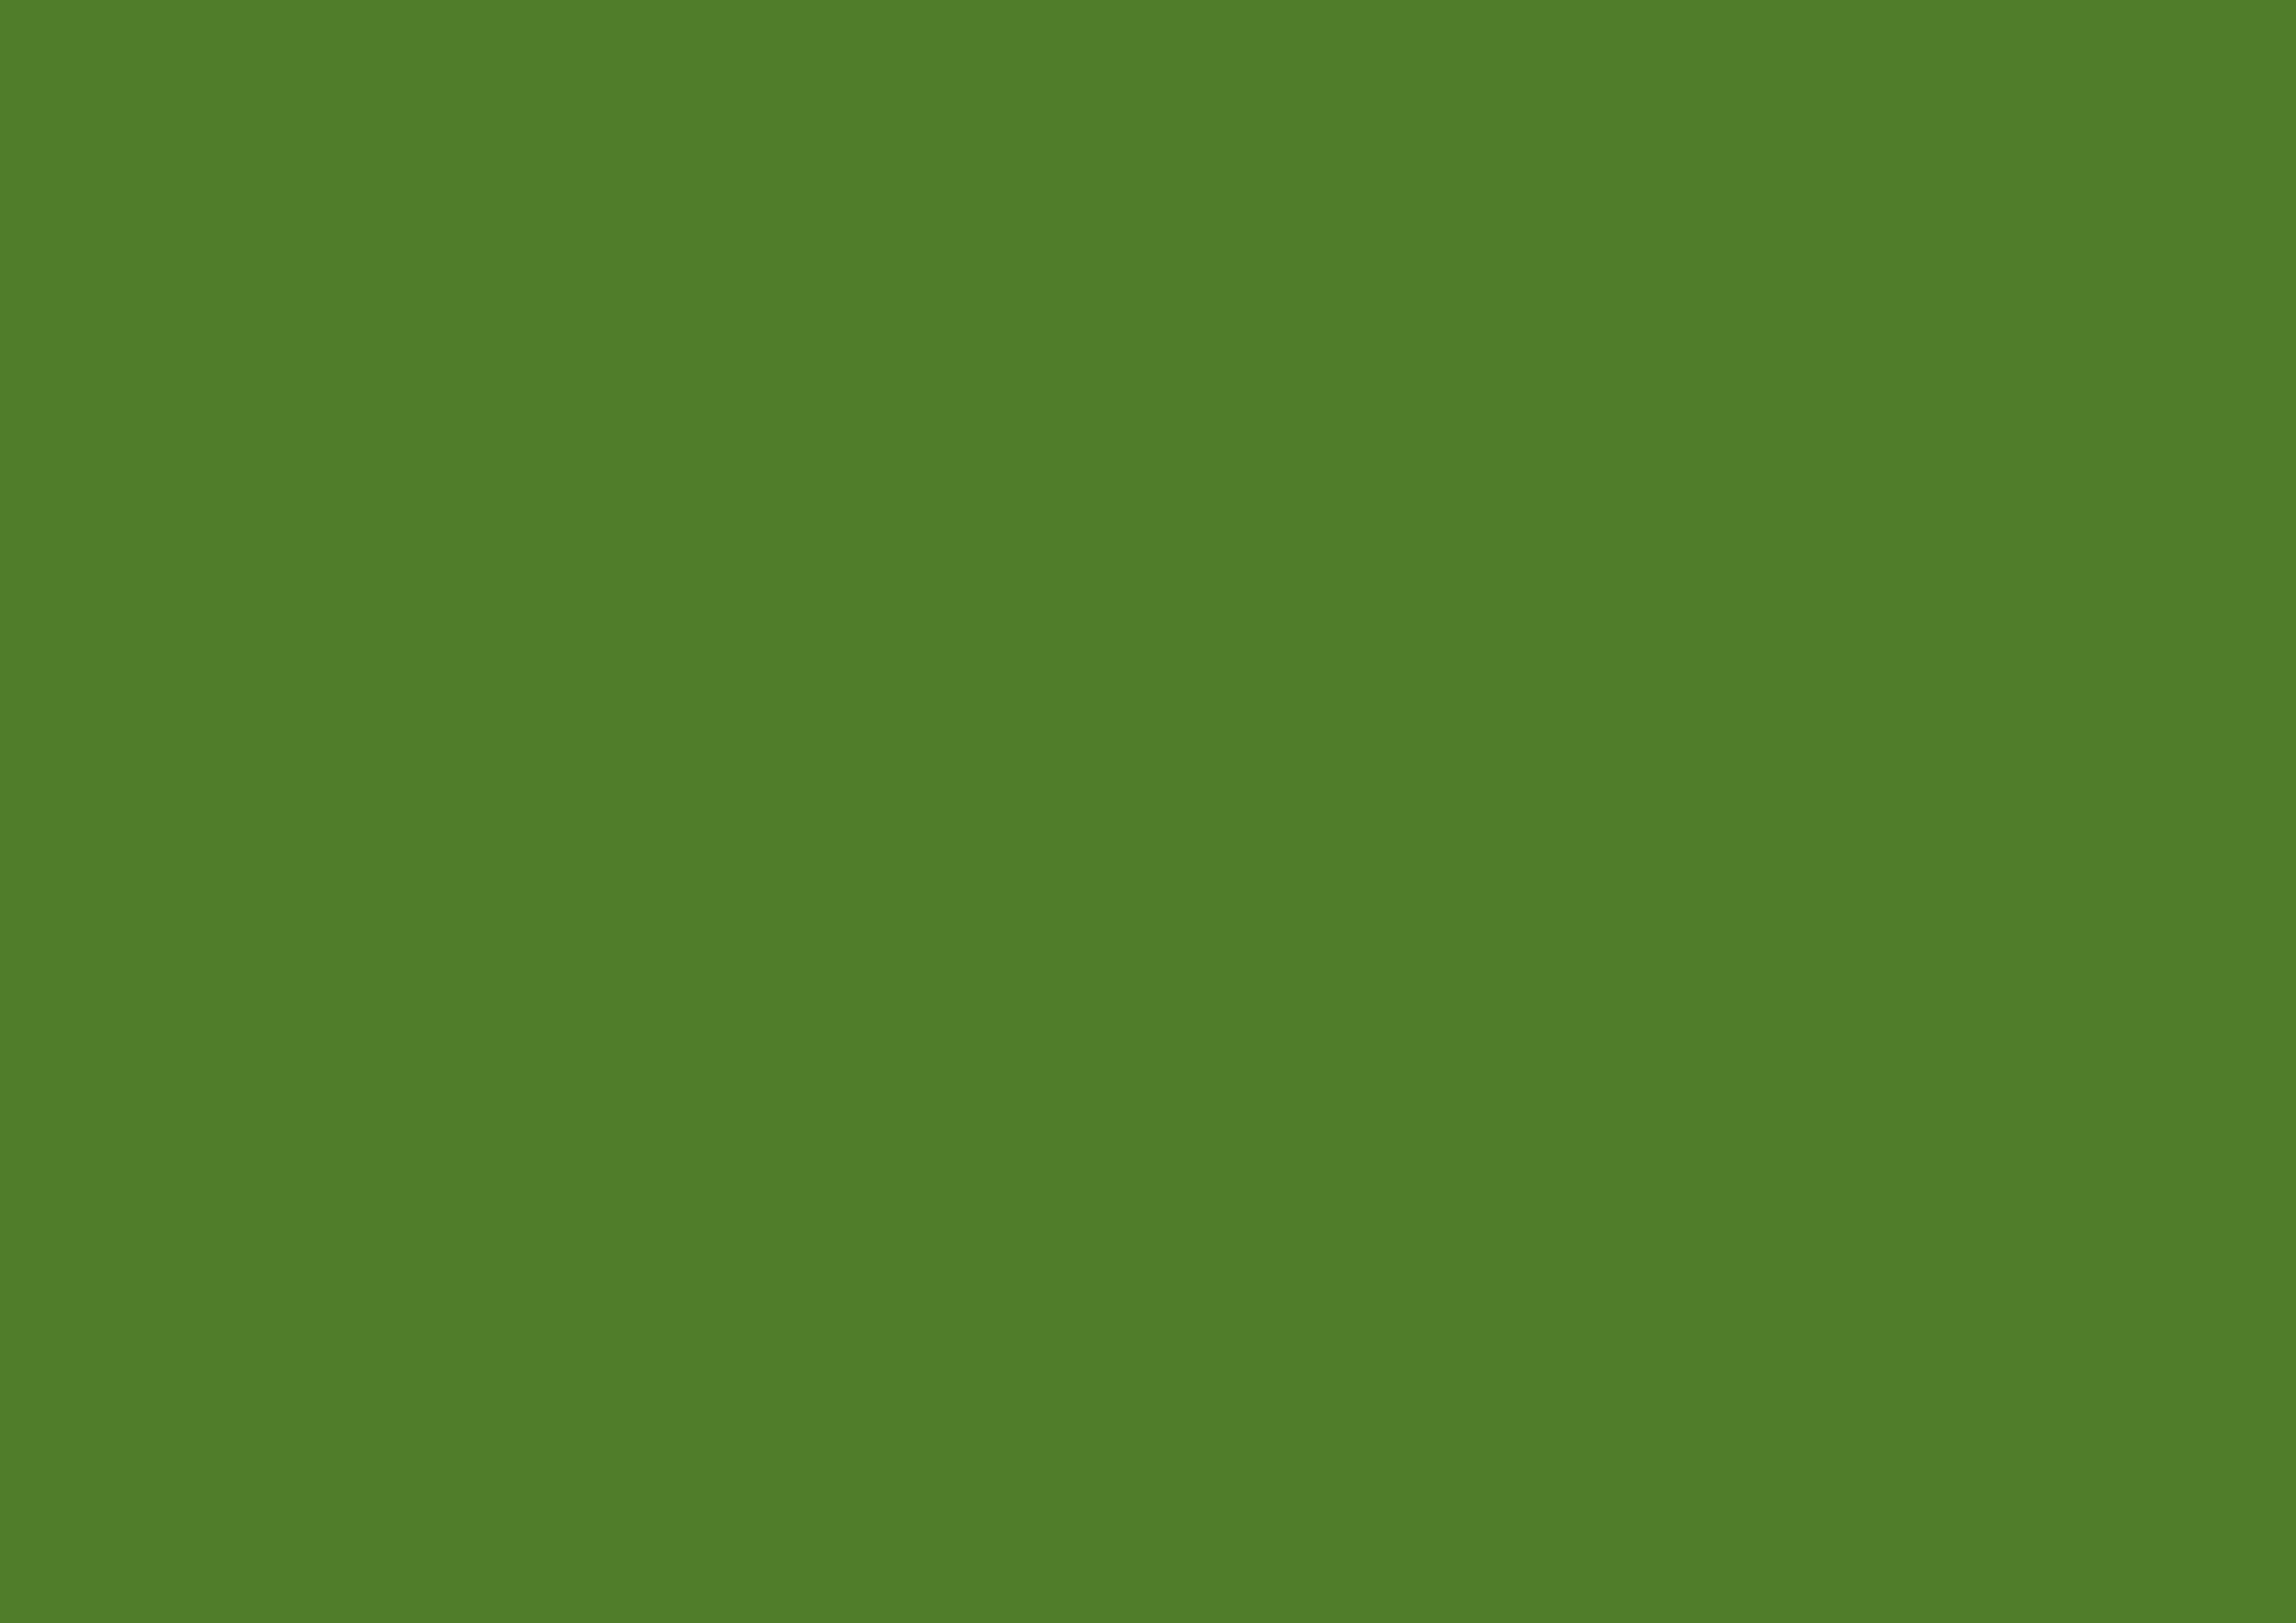 3508x2480 Sap Green Solid Color Background